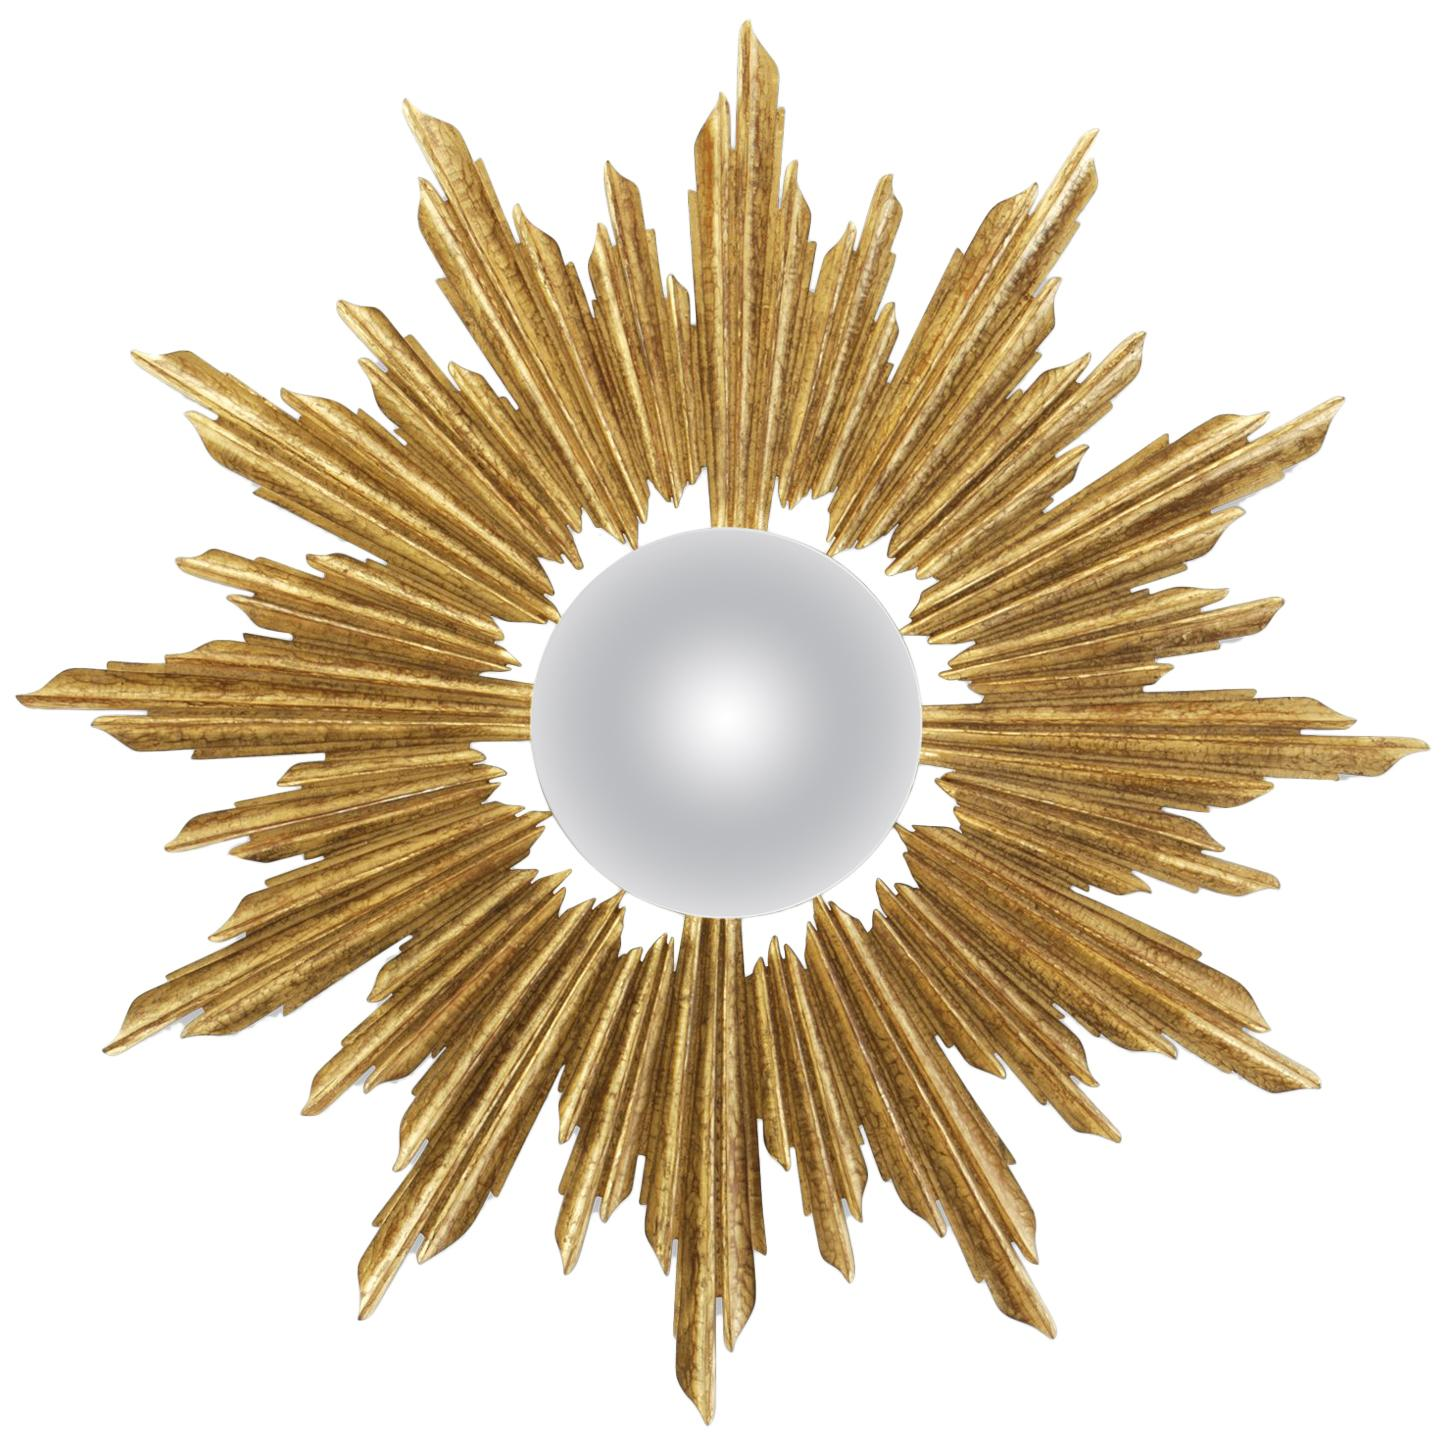 Sun King Mirror in Solid Wood with Antique Gold Paint